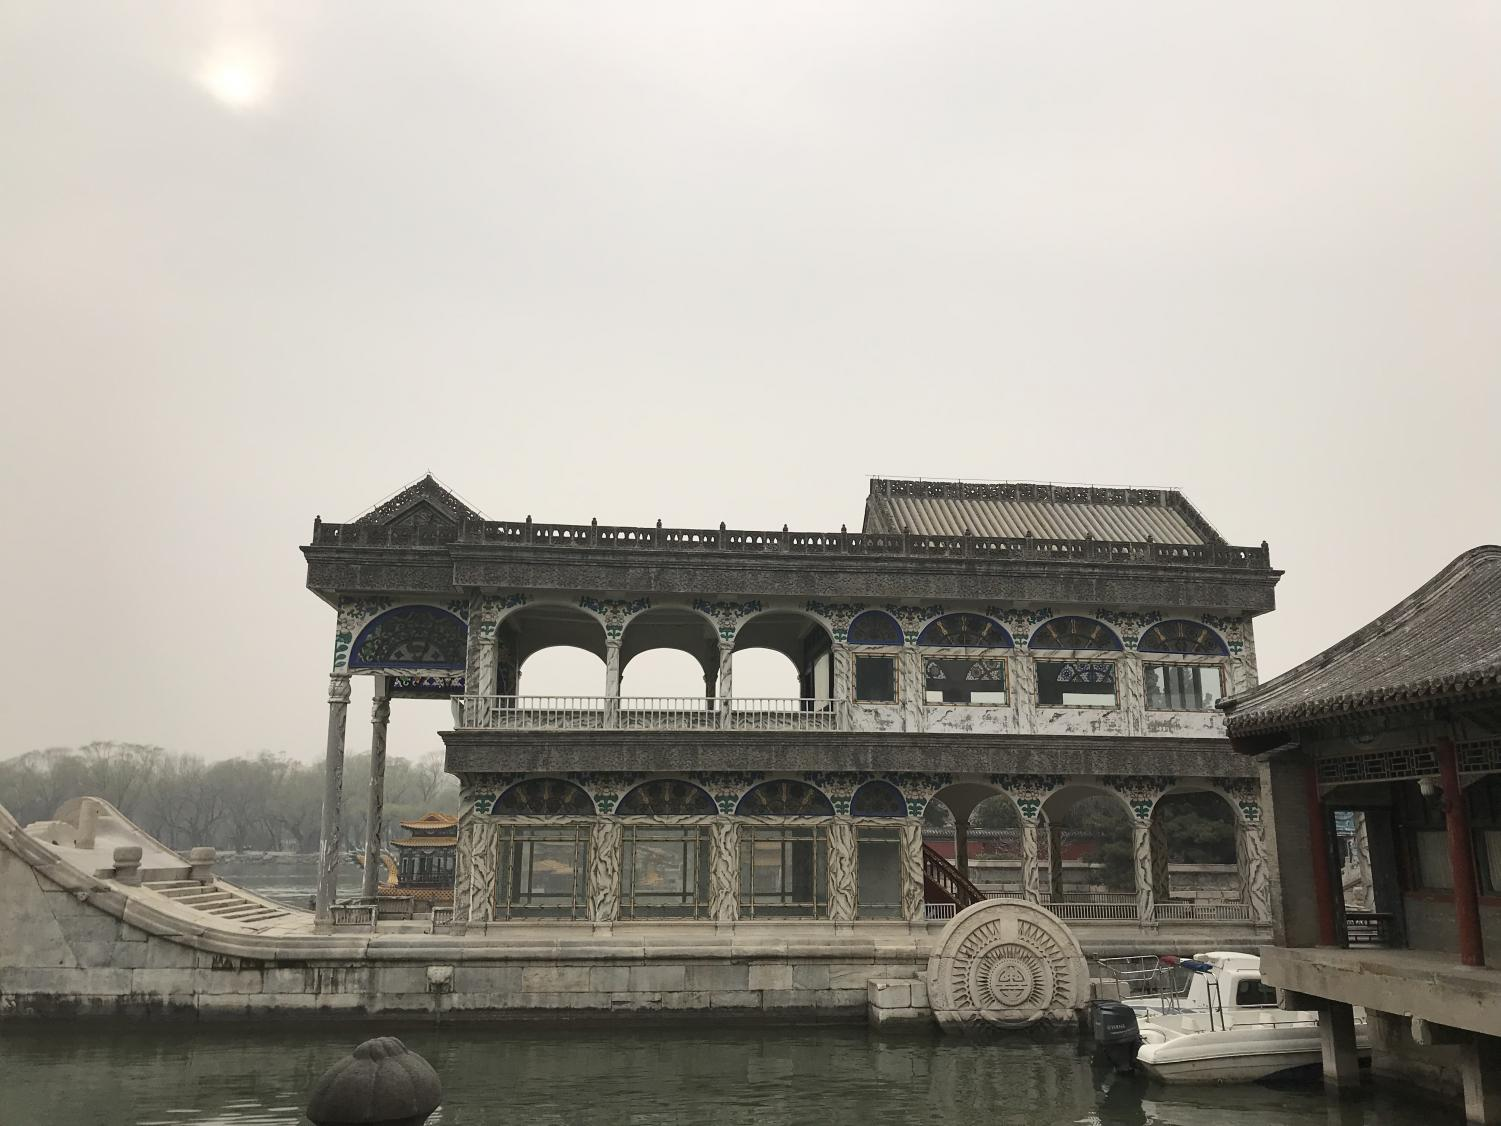 Granite+%22Boat%22+in+the+Summer+Palace%2C+Beijing+China